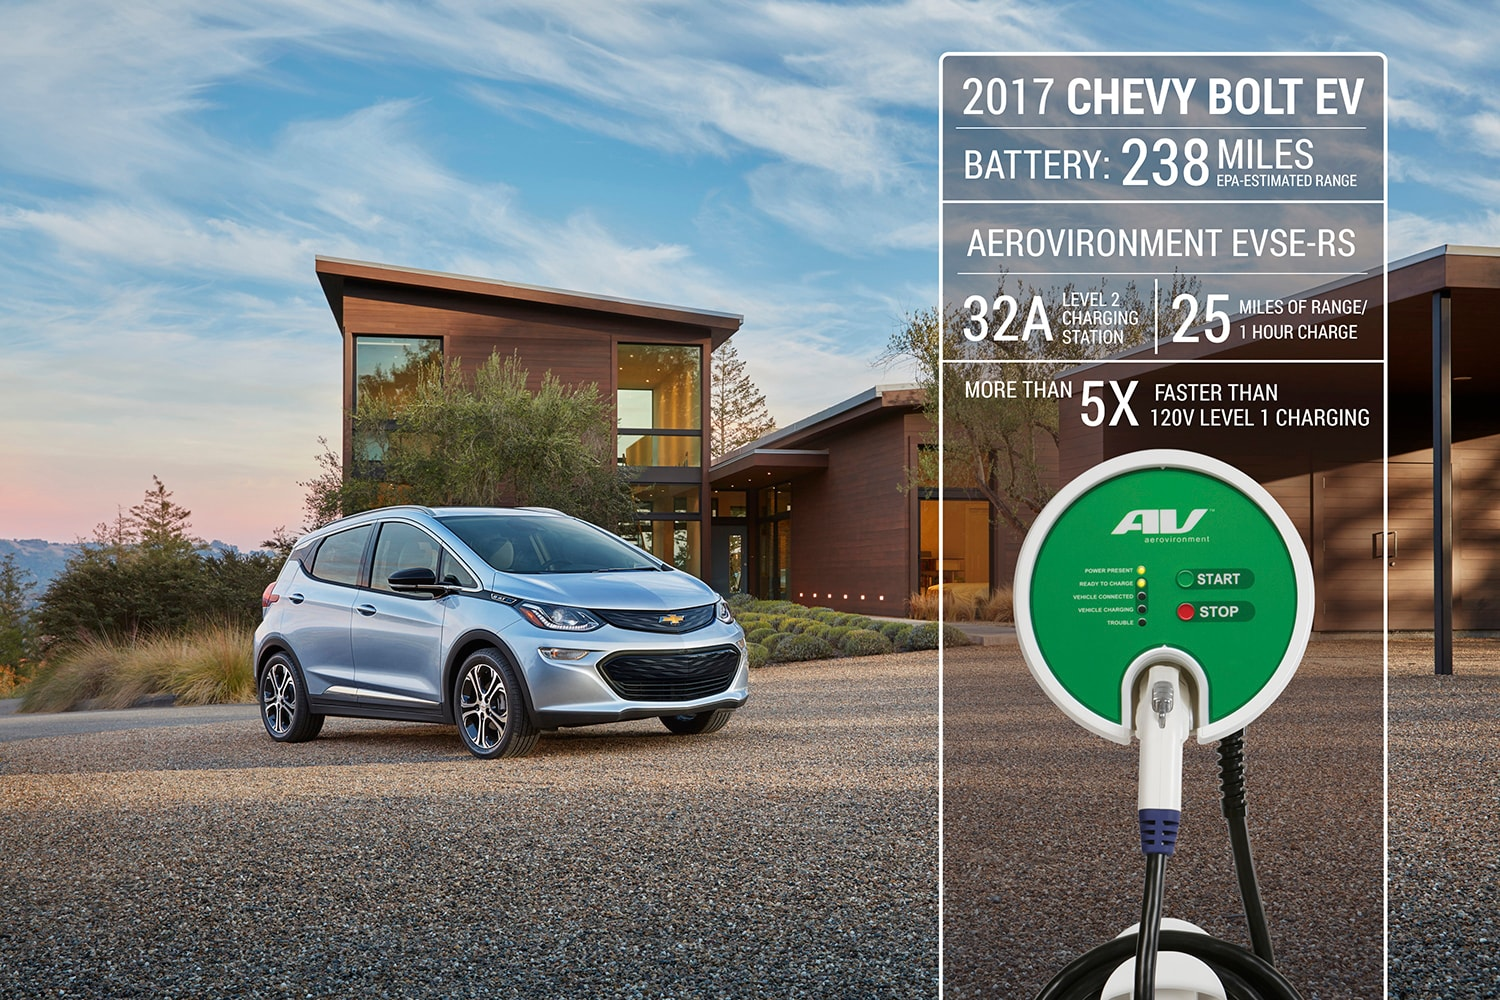 How To Install A Home Ev Charger For Your Chevy Bolt Wiring Schematic Ac Car Conversion Electrical Diagrams There